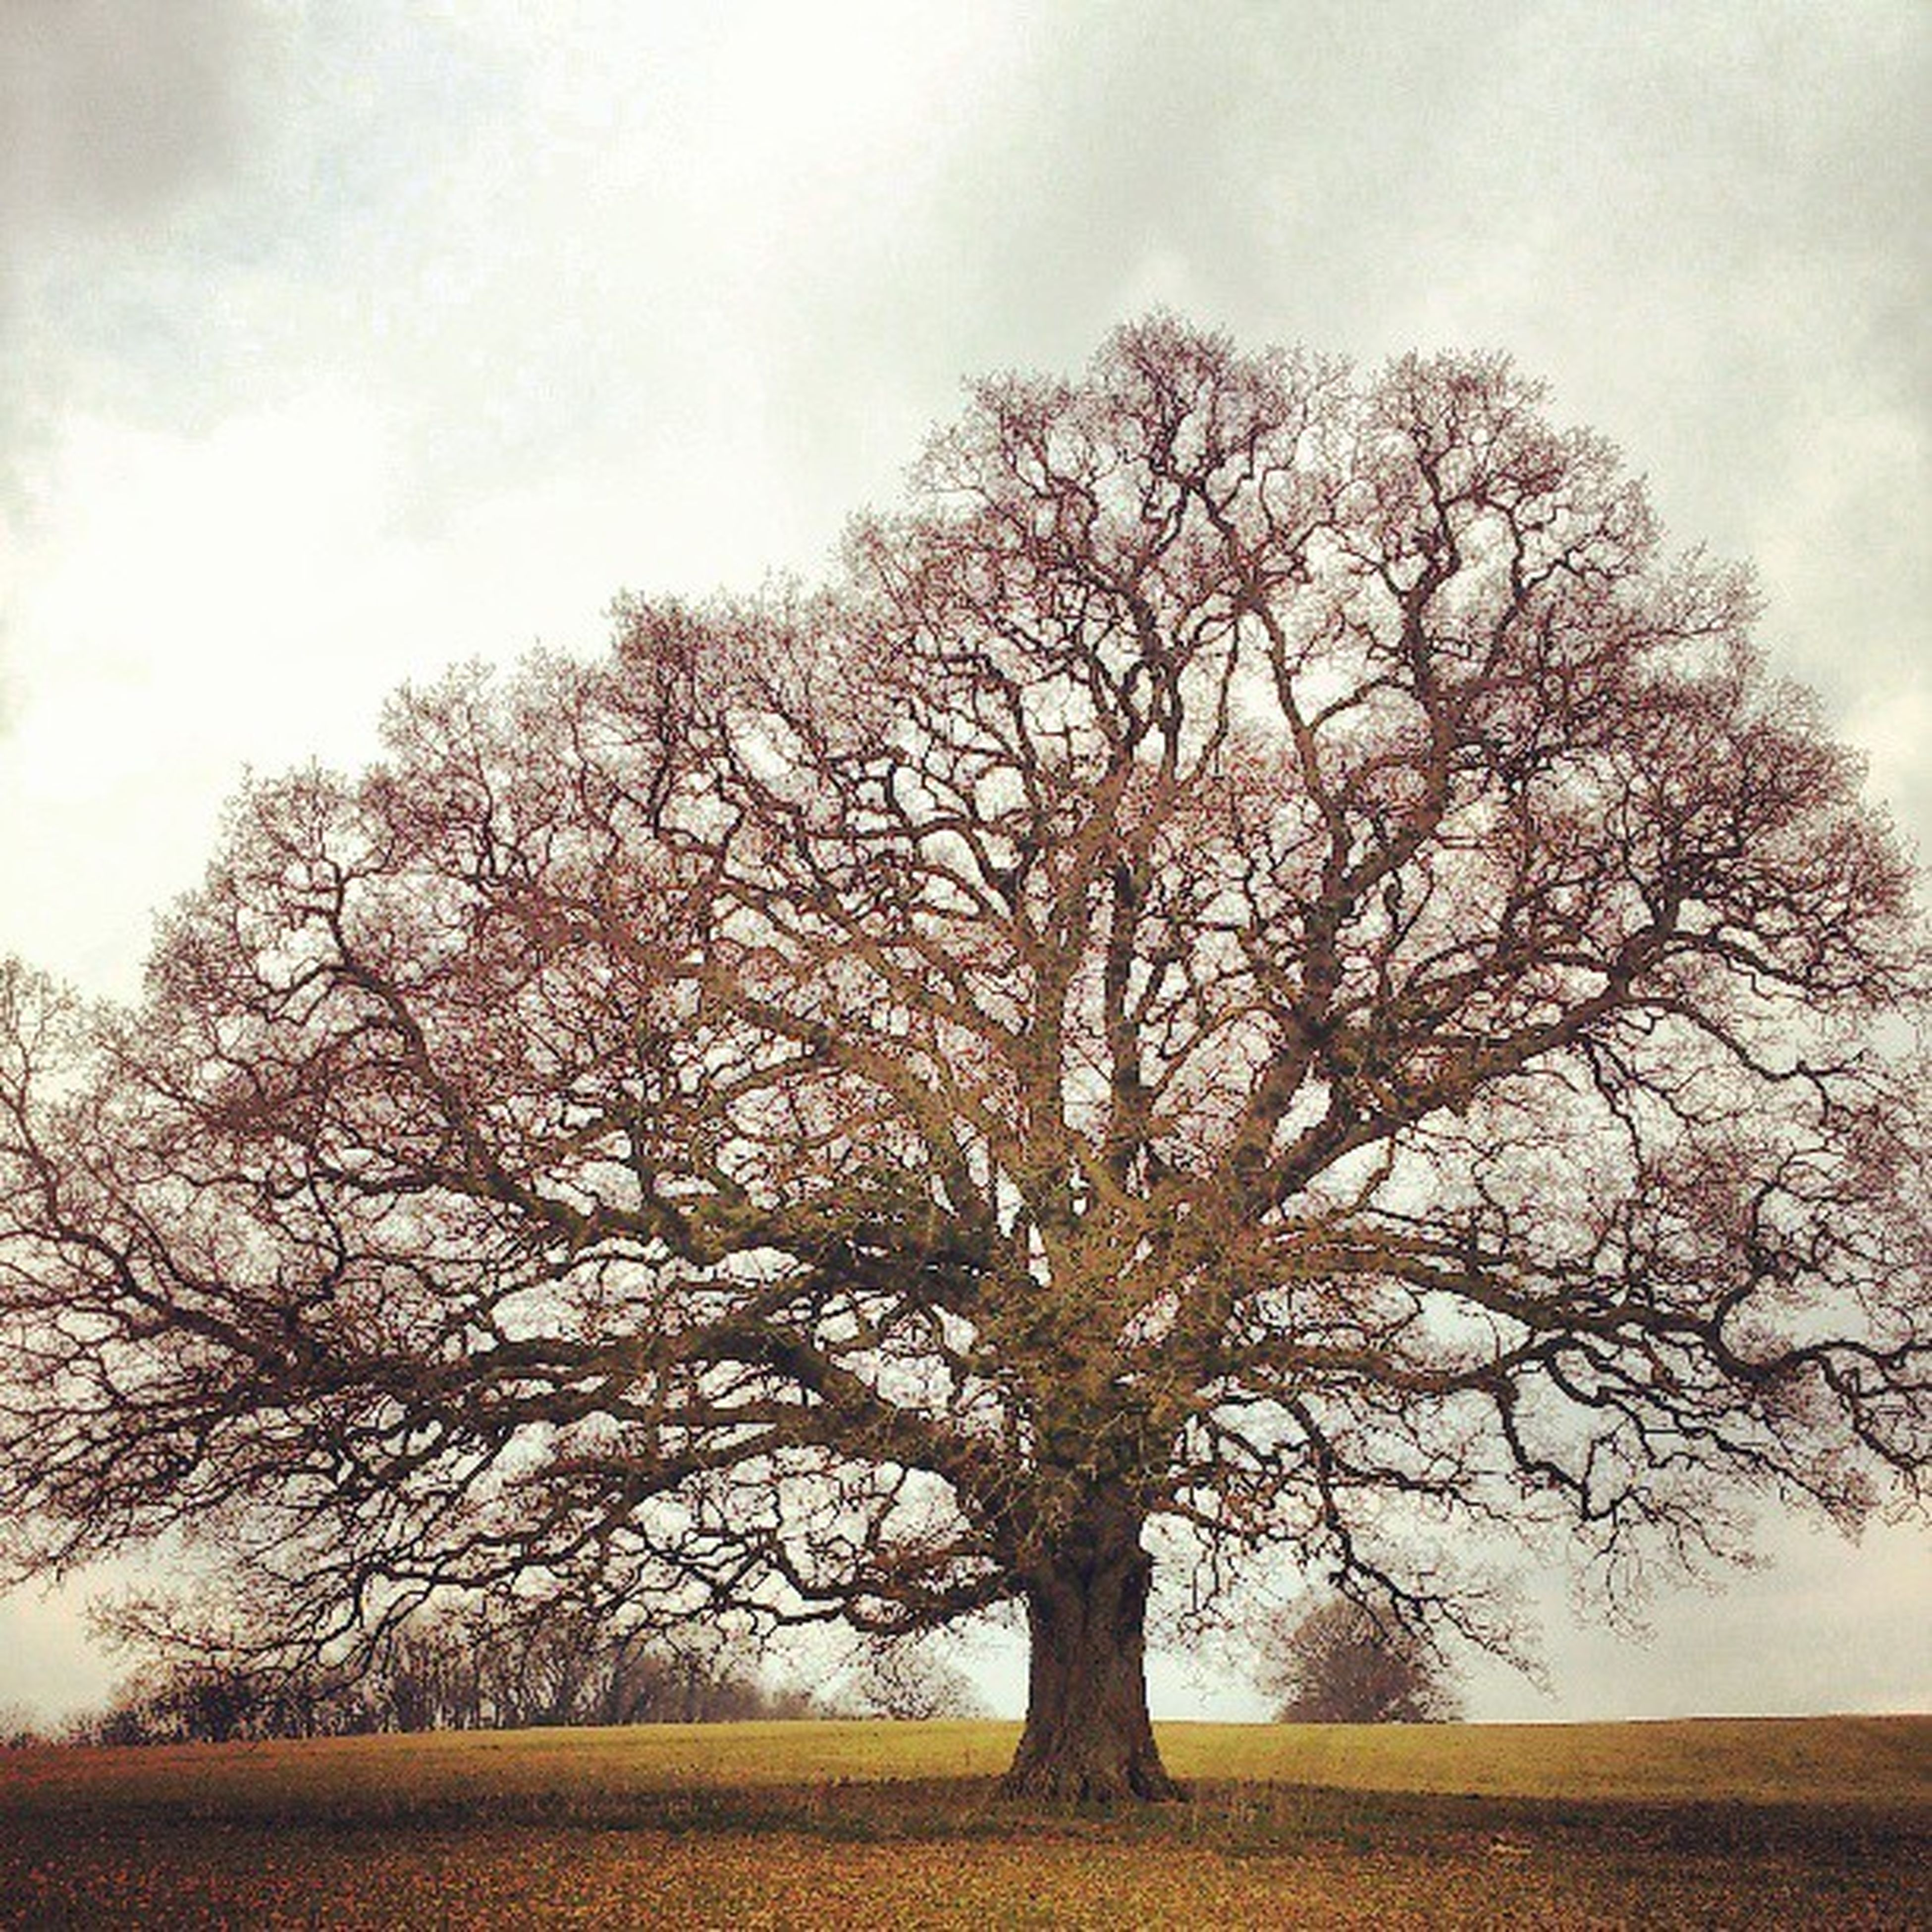 tree, bare tree, branch, tranquility, sky, tranquil scene, field, landscape, nature, single tree, beauty in nature, scenics, tree trunk, growth, cloud - sky, non-urban scene, outdoors, cloud, grass, day